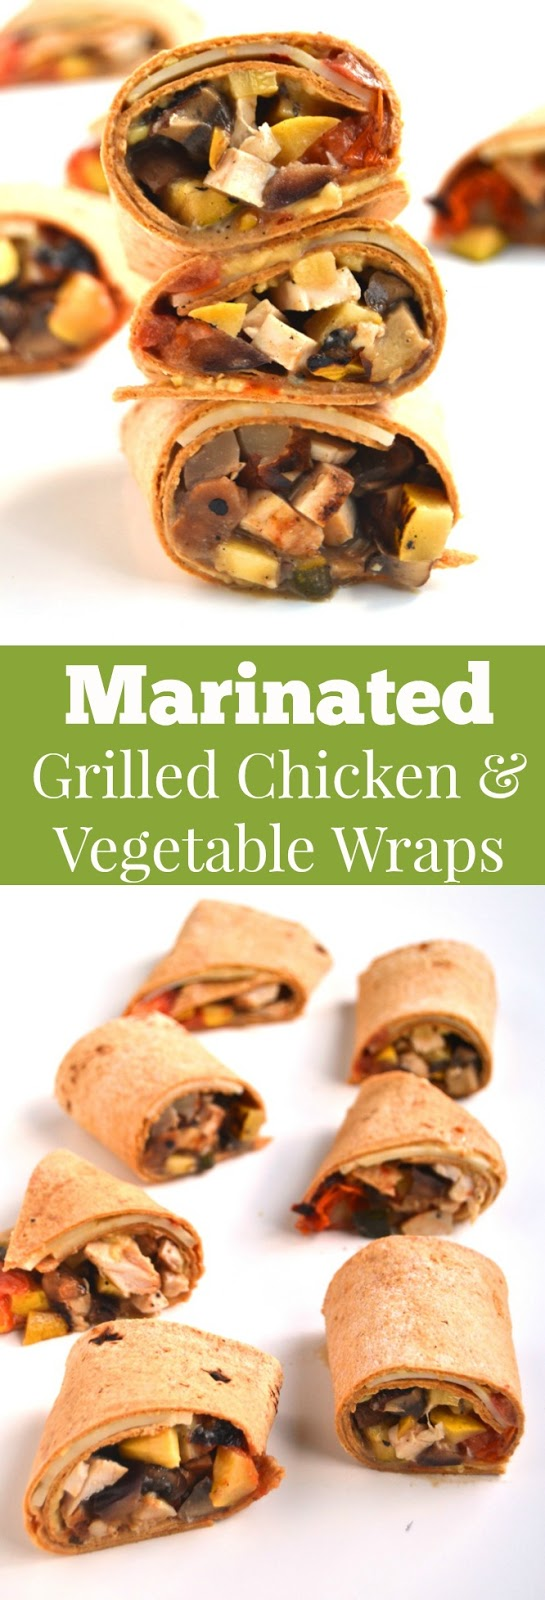 Marinated Grilled Chicken and Vegetable Wraps feature marinated balsamic chicken and vegetables, hummus and pepper jack cheese in a wrap using leftover chicken and vegetables for lunch in 5 minutes! www.nutritionistreviews.com